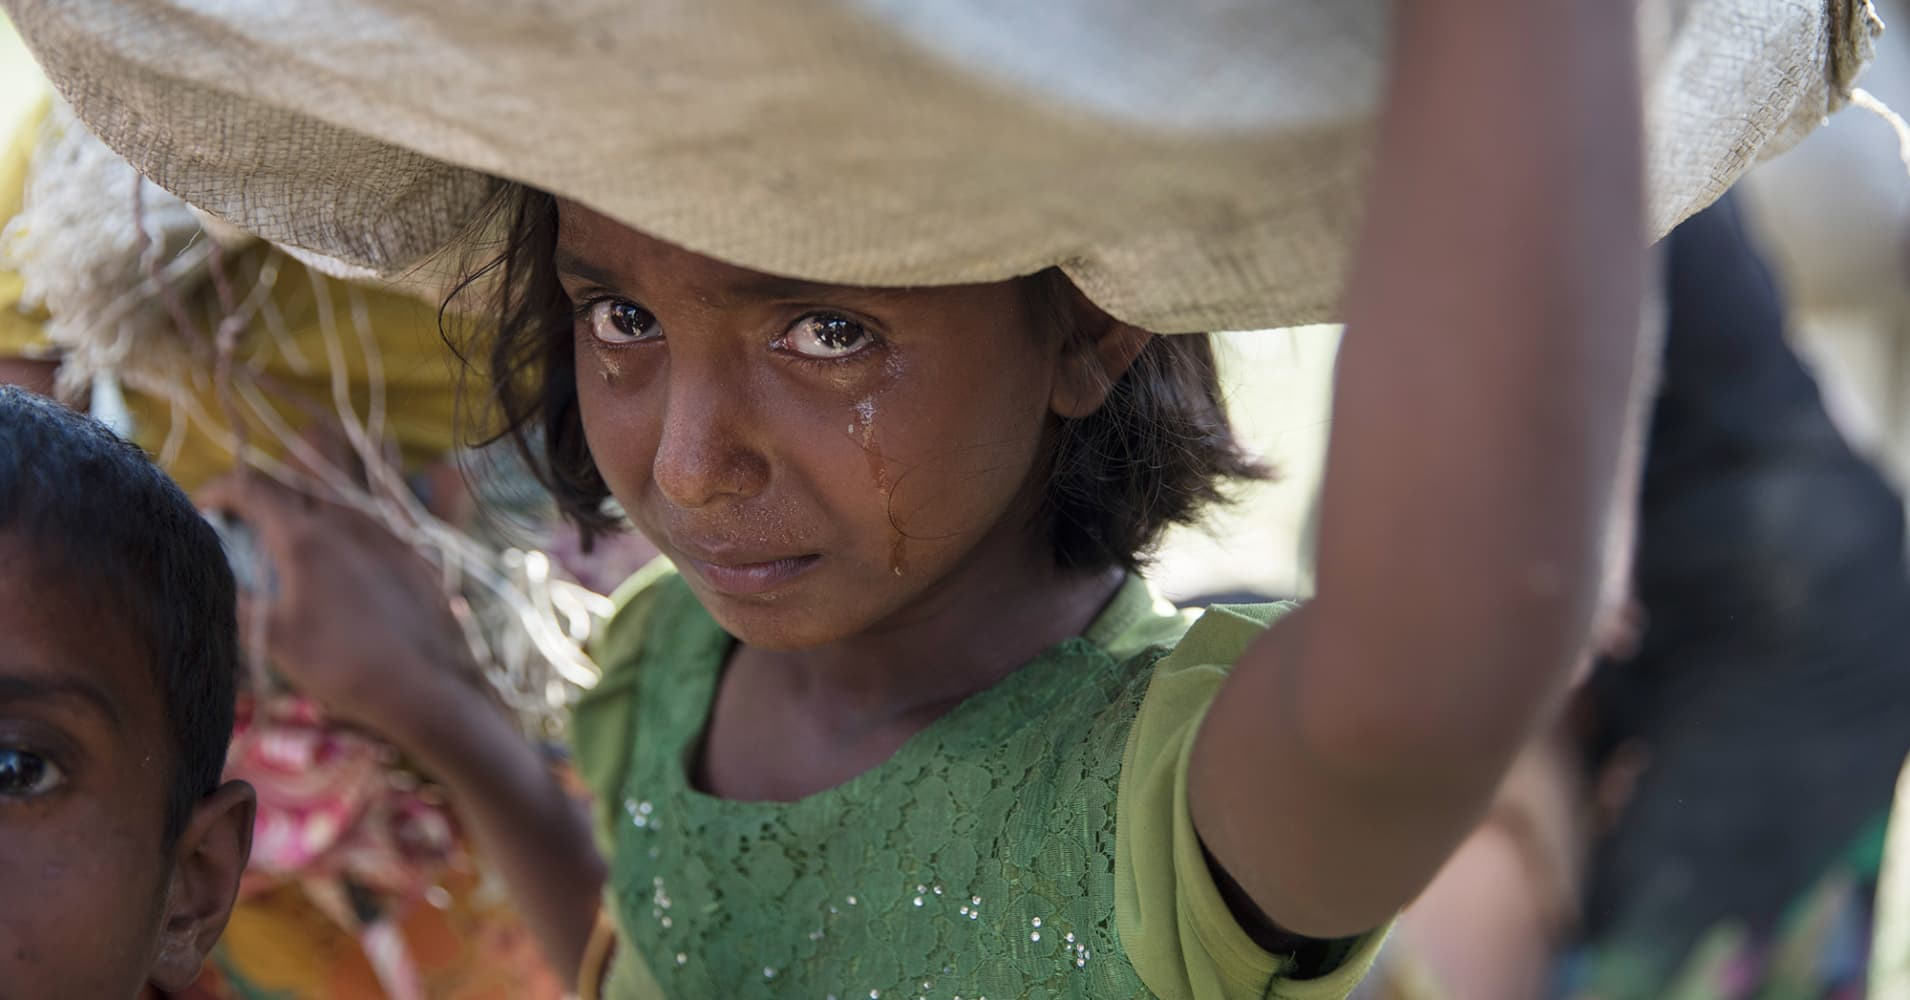 A Rohingya girl cries as refugees fleeing from Myanmar cross a stream in the hot sun on a muddy rice field on October 16, 2017 near Palang Khali, Cox's Bazar, Bangladesh.